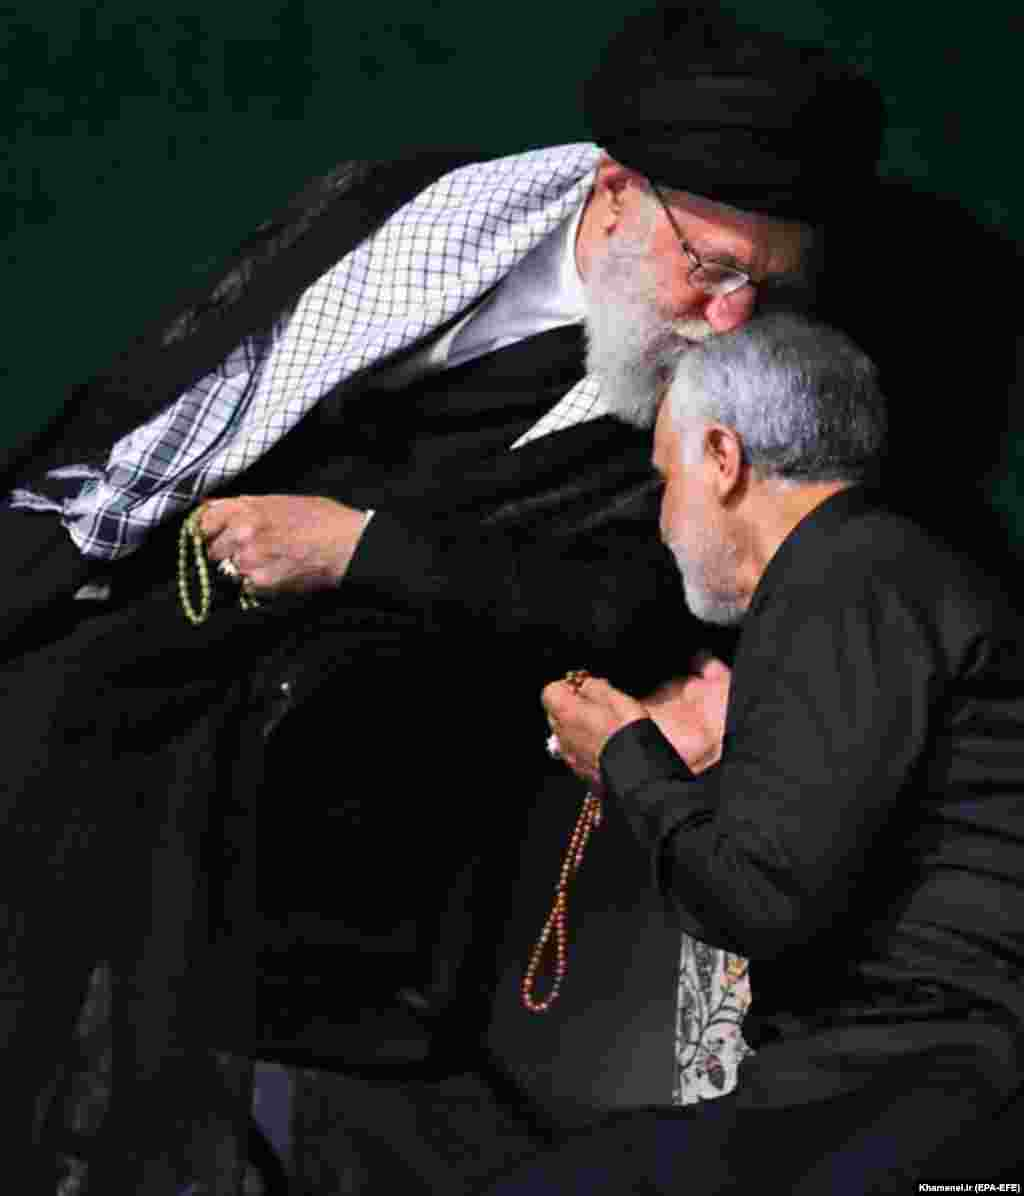 Qasem Soleimani became commander of the Quds Force in 1998, the foreign arm of Iran's Islamic Revolutionary Guards Corps. Under Soleimani's leadership, the Quds Force expanded Tehran's influence beyond Iran's borders and throughout the Middle East -- from Lebanon and Yemen to Iraq and Syria.